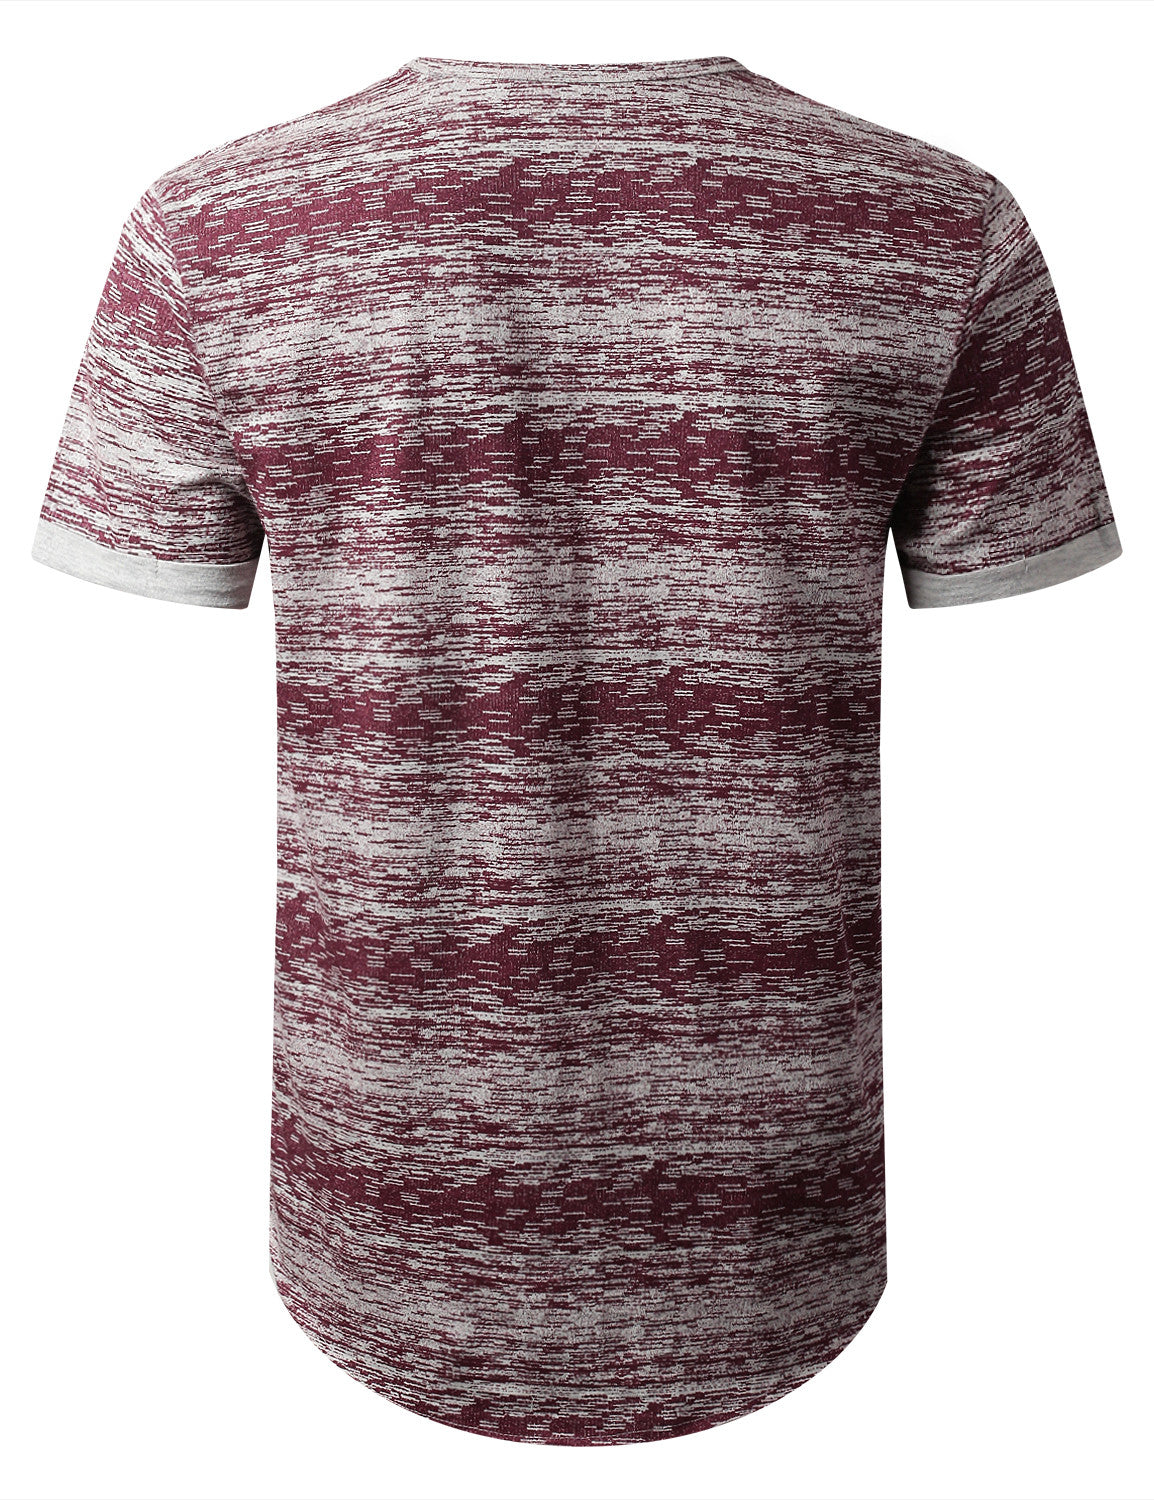 RED Space Dye Paint Pocket T-shirt - URBANCREWS